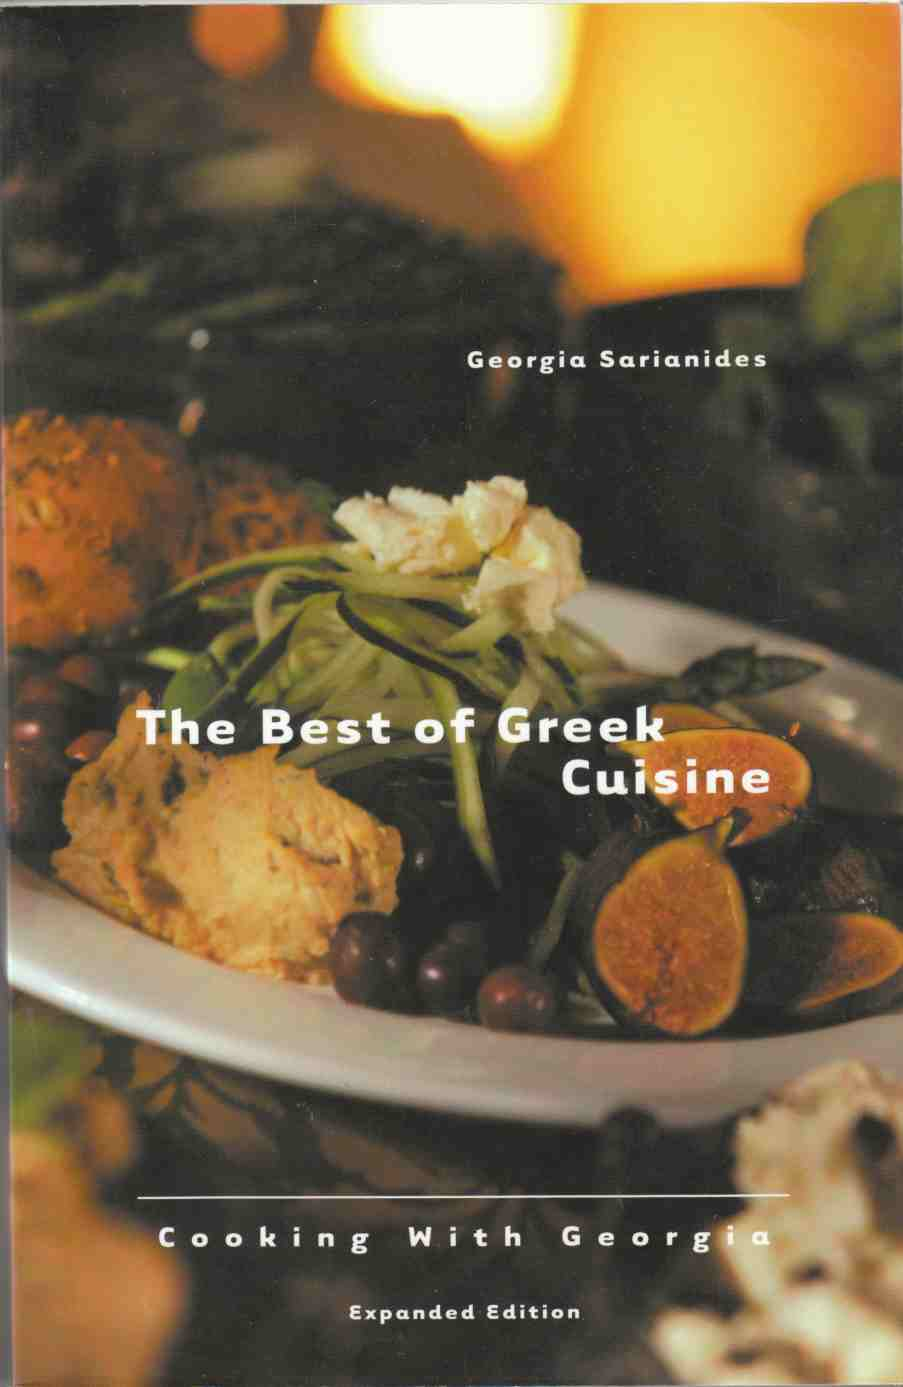 Image for The Best of Greek Cuisine Cooking with Georgia, Expanded Edition